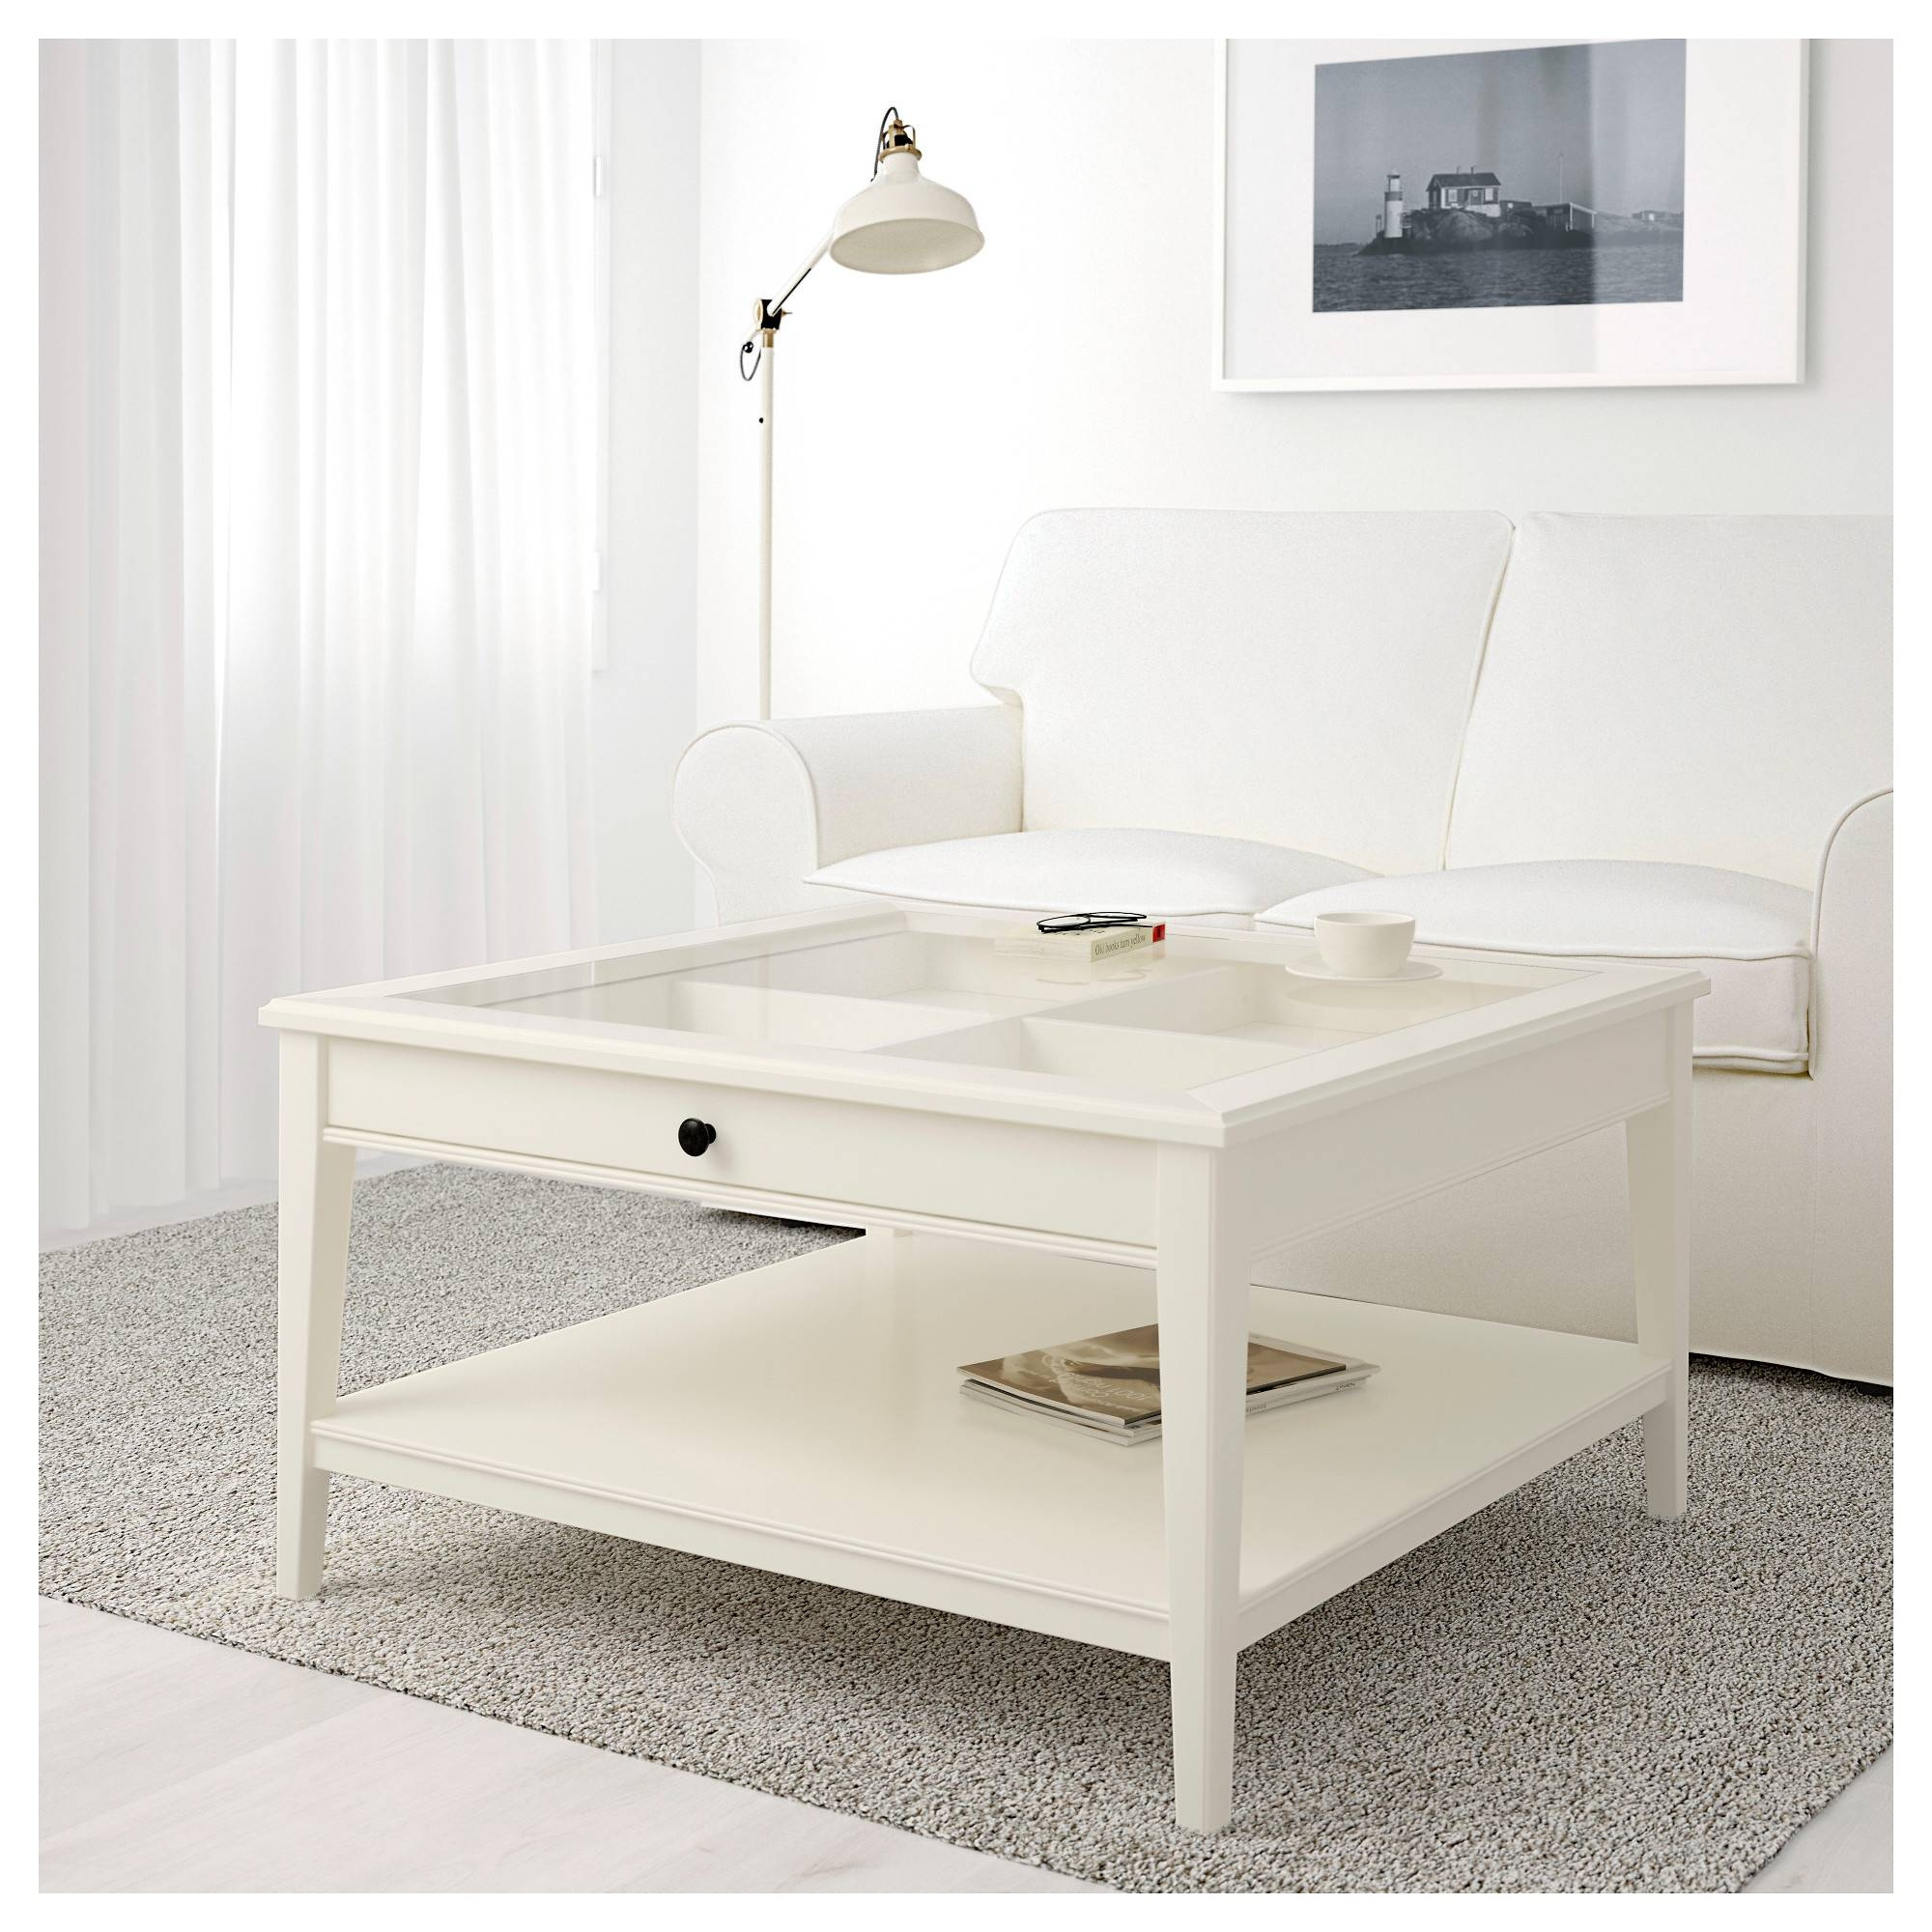 Liatorp Coffee Table - White/glass - Ikea pertaining to White And Glass Coffee Tables (Image 19 of 30)